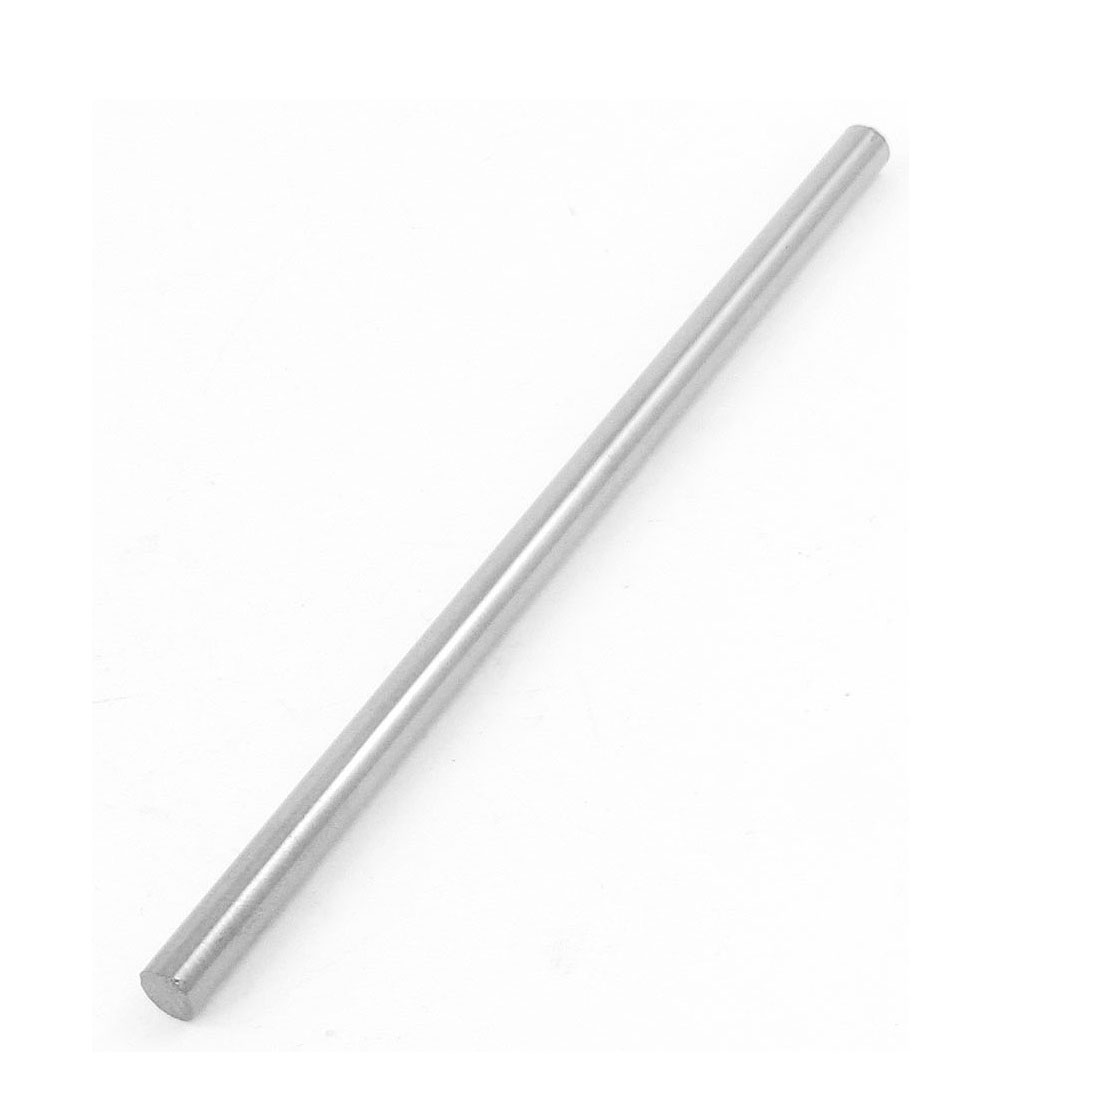 3.5mm x 102mm Stainless Steel Round Bar Stock Rod Dark Gray